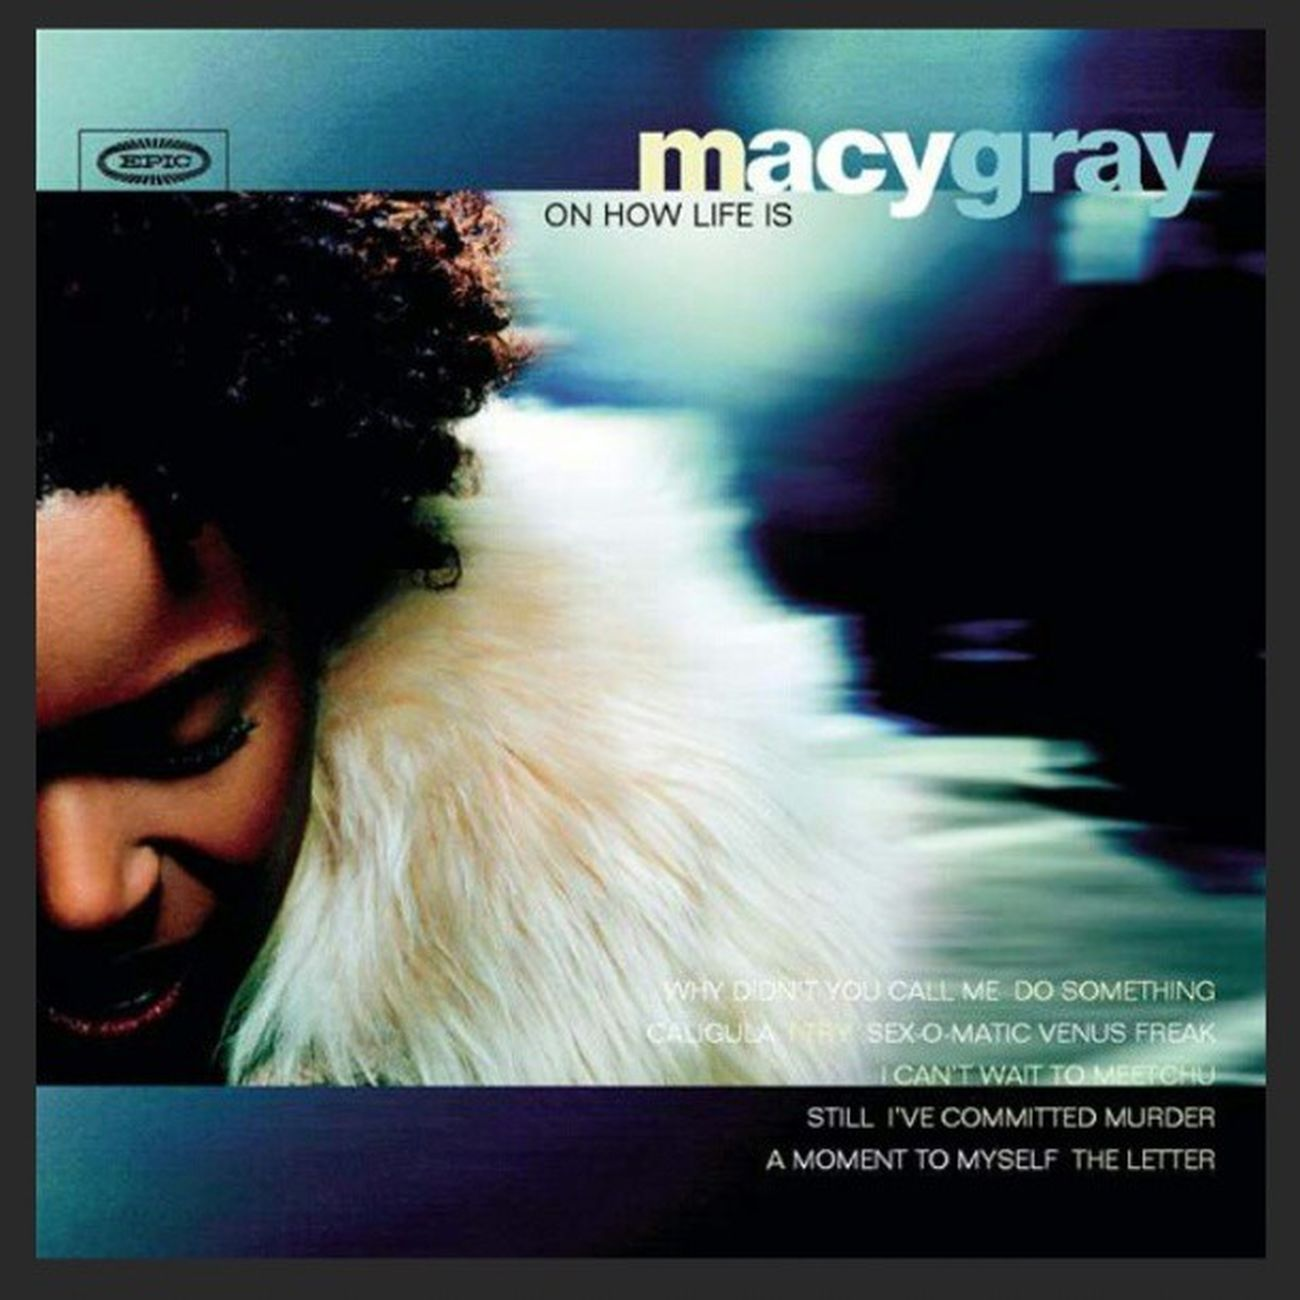 MacyGray ITry Love Music song lyrics beautiful jayz eminem cute instagood iphonesia 50cent art fun rakim tokyo thepaperboy robot soul asia nicolekidman macy matthewmcconaughey hiphop instamusic asian picoftheday photooftheday nowplaying